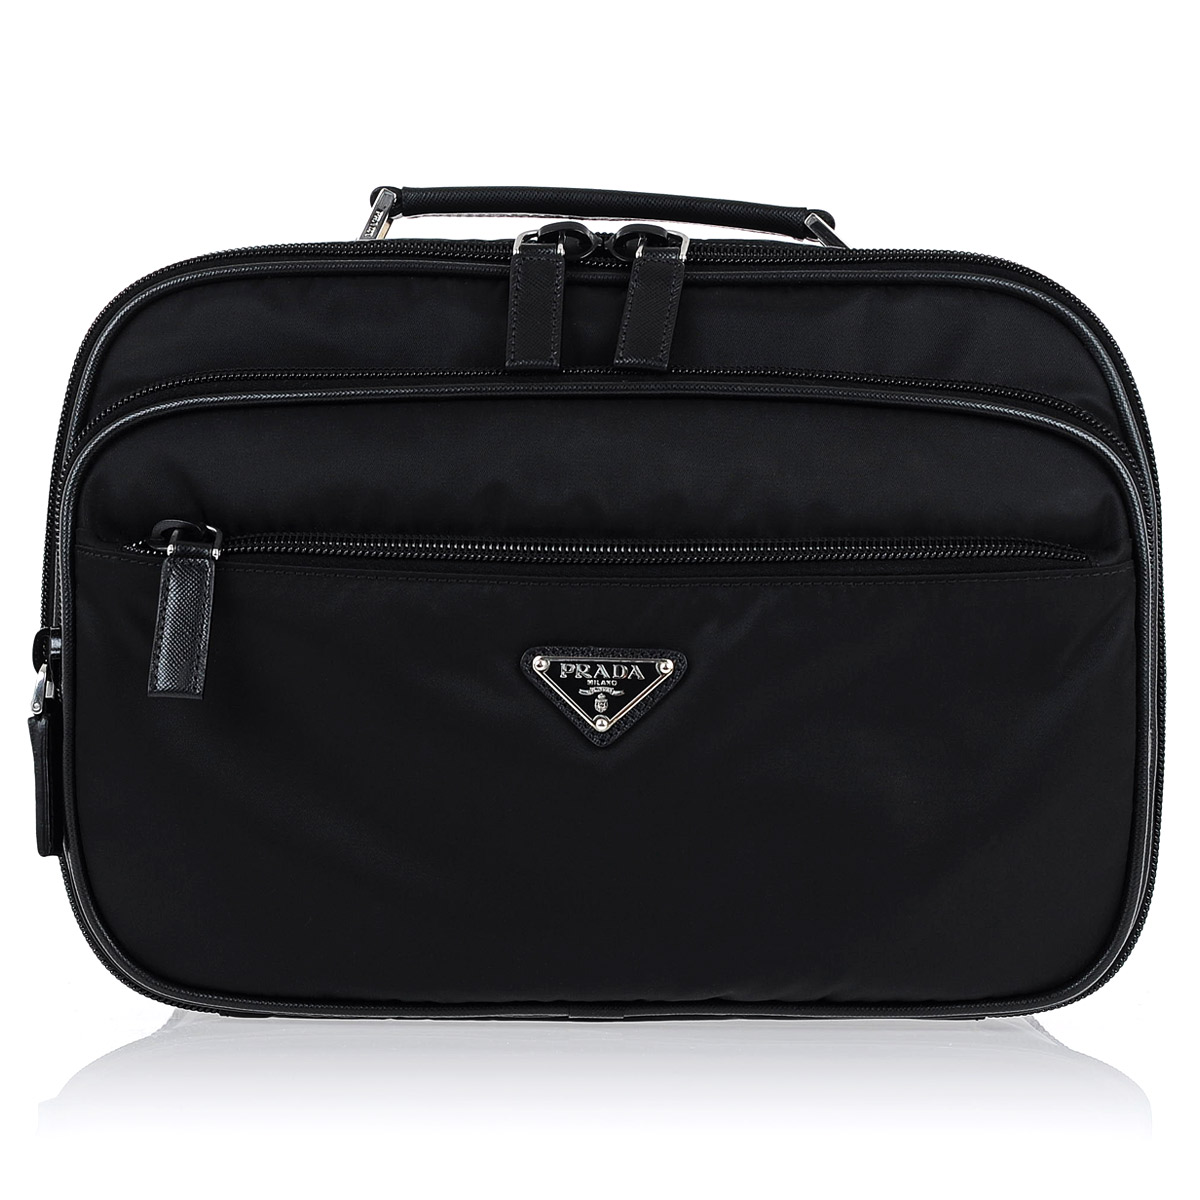 0edcd7c6eac1 Prada Toiletry Bag Mens | Stanford Center for Opportunity Policy in ...